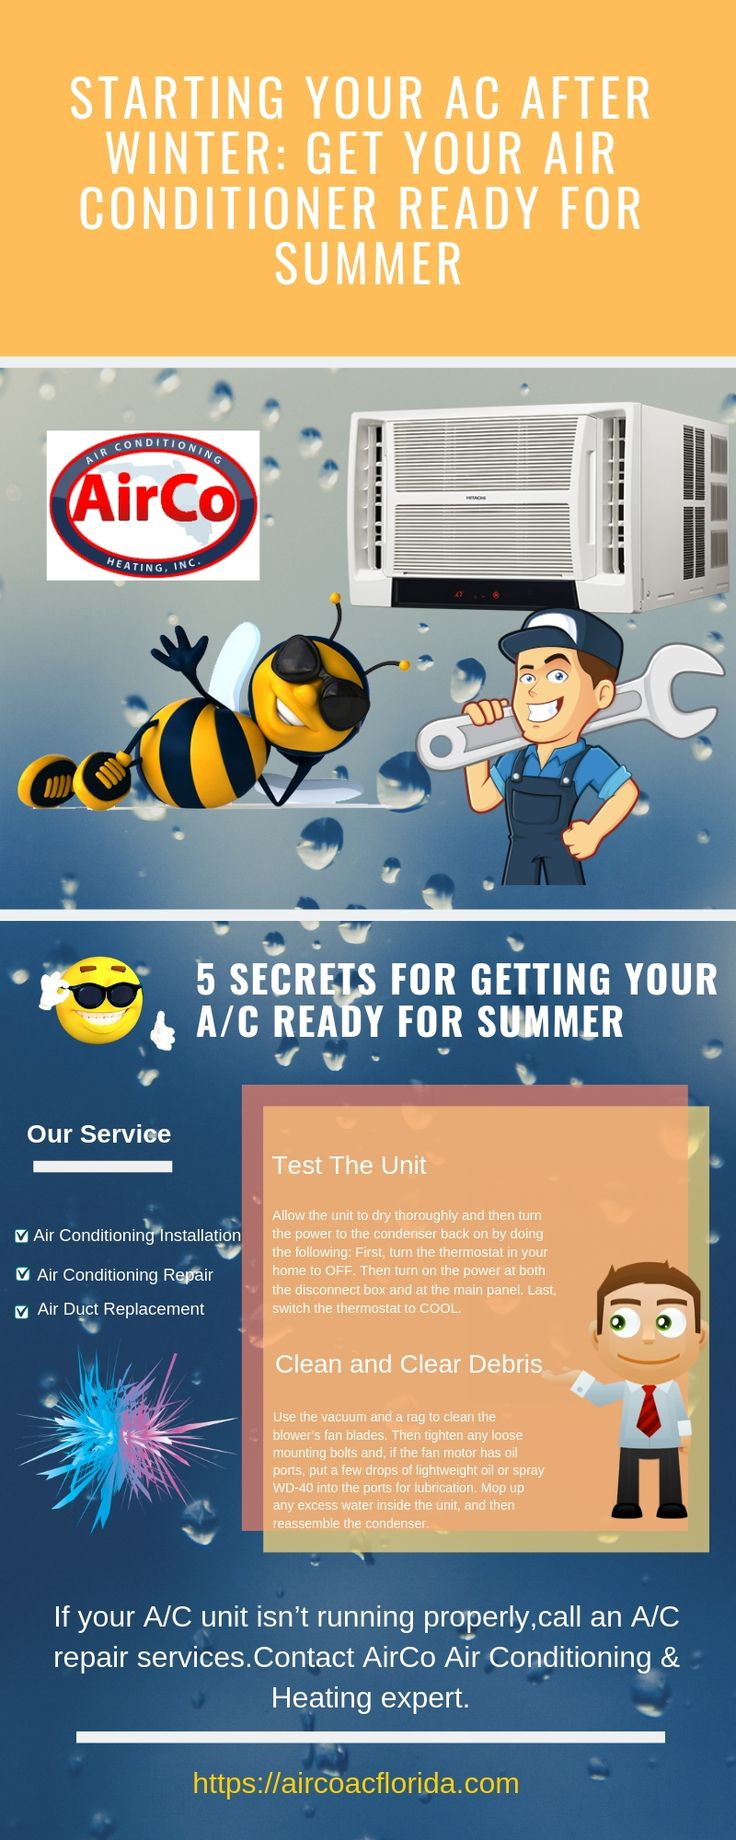 If your A/C unit isn't running properly,call an A/C repair